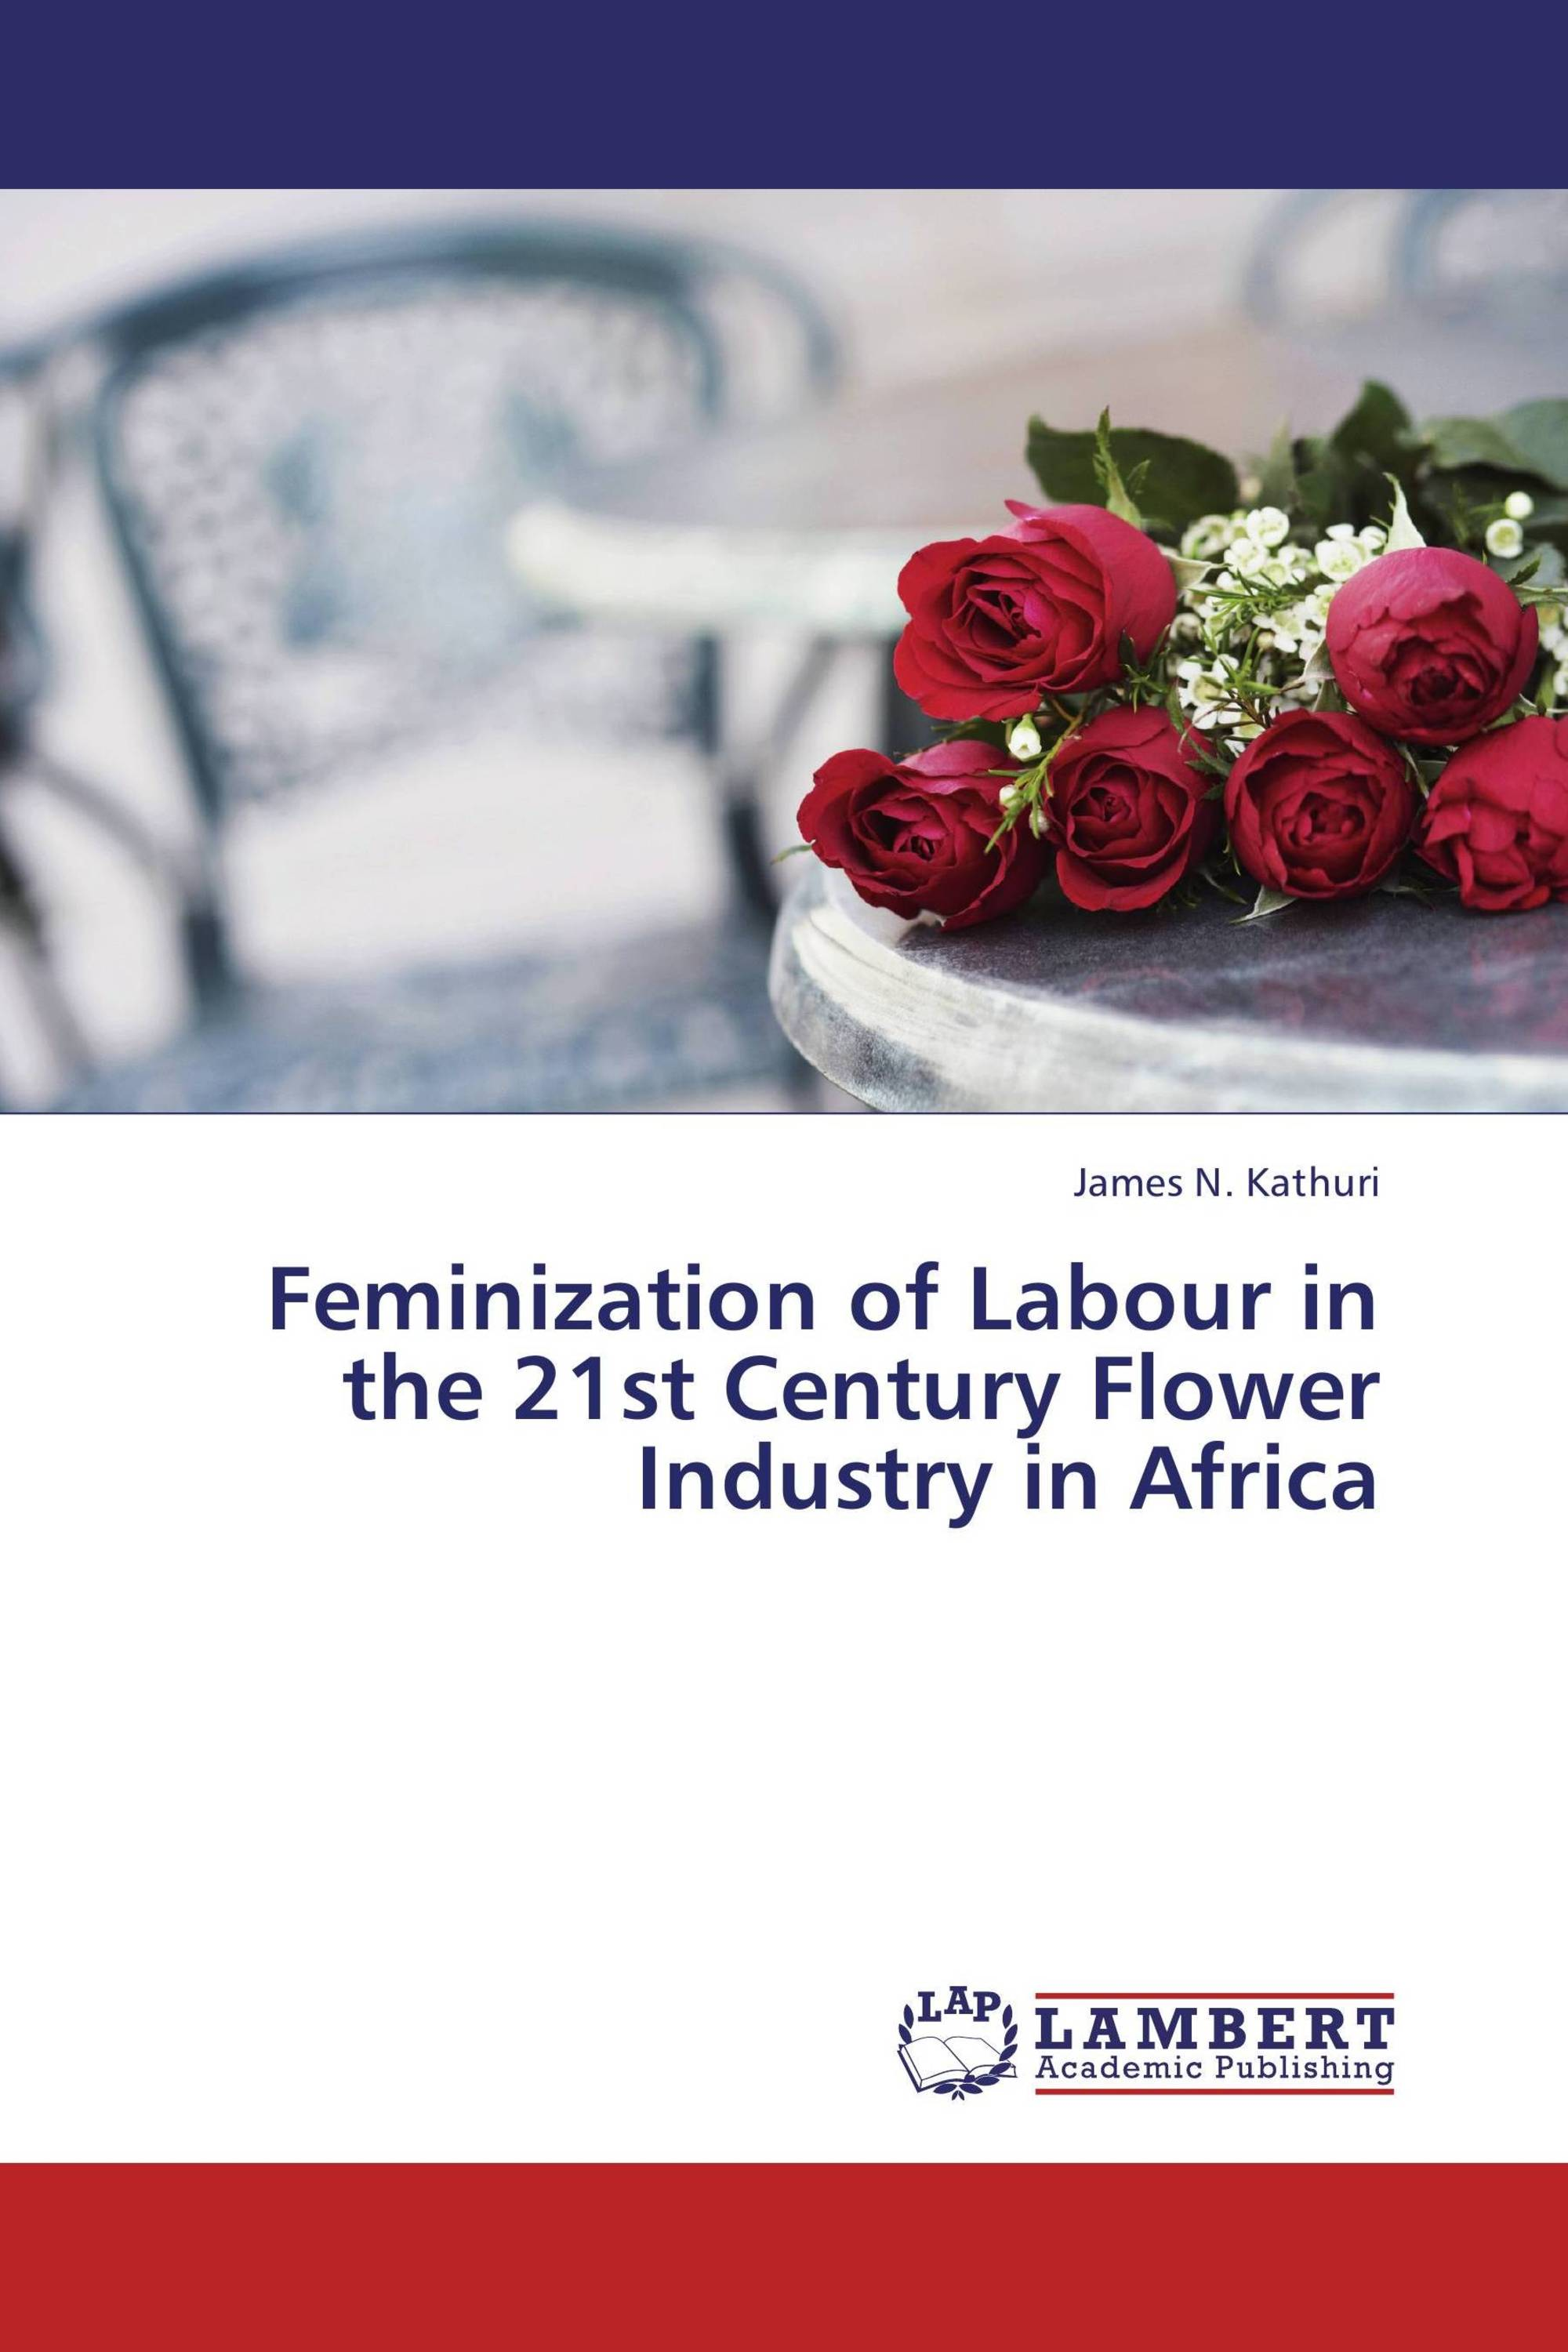 Feminization of Labour in the 21st Century Flower Industry in Africa